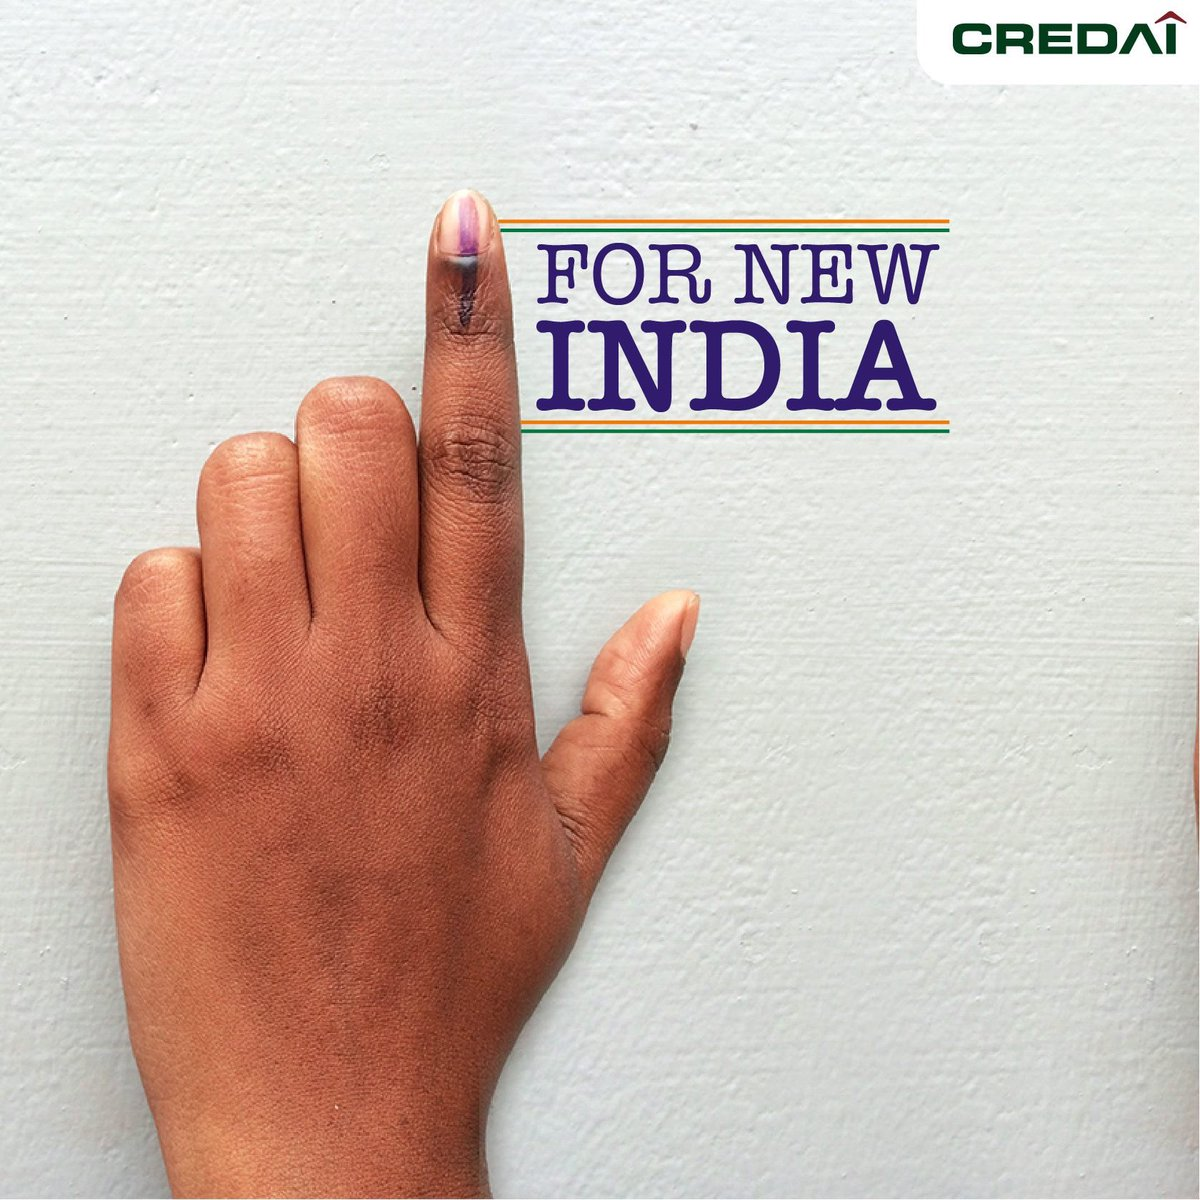 Make your choice and be sure to vote! Your future is in your hands. #VoteIndia #PragatiKiAur #VoteForChange @CREDAINational @ASSOCHAM4India @CREDAI_Gujarat @SavvyAhmedabad @PMOIndia https://t.co/inOJjUgUzB